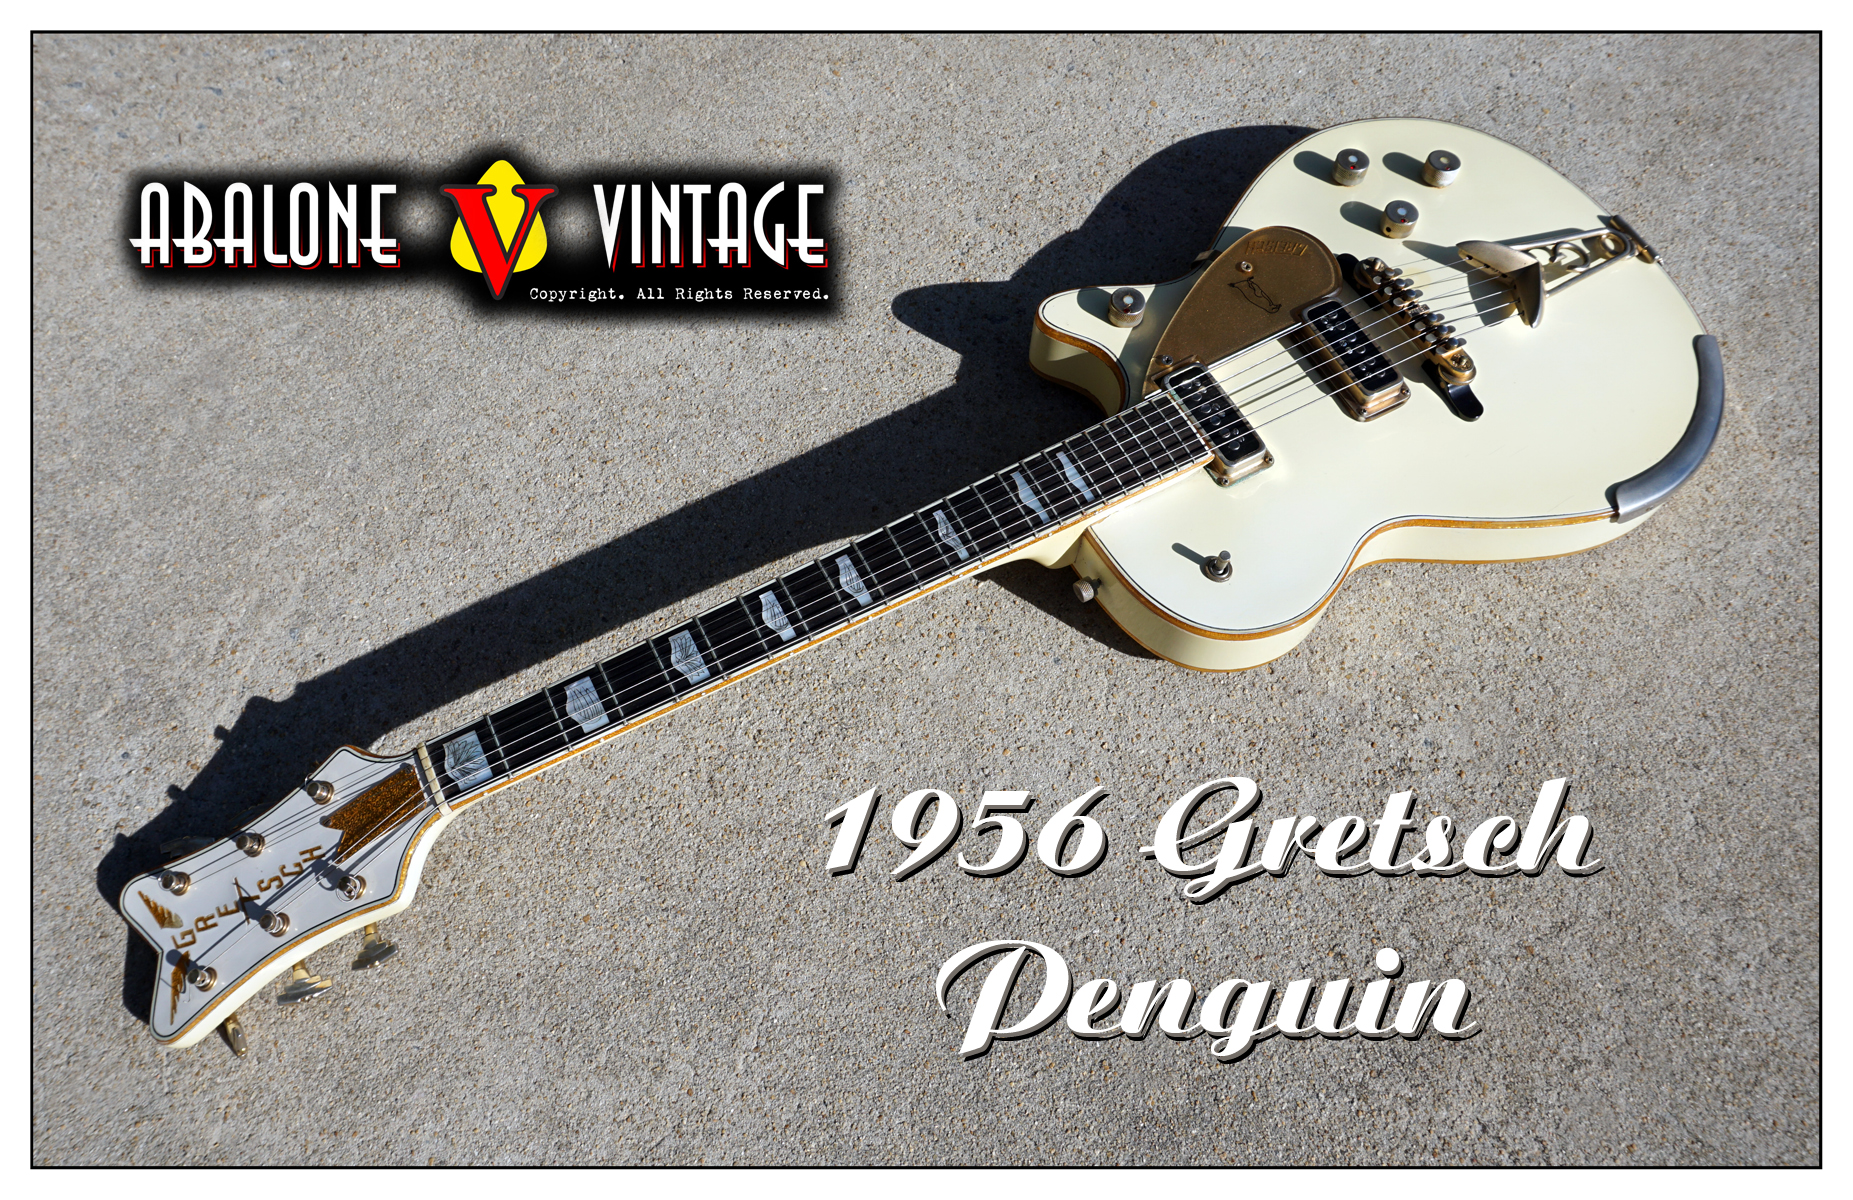 1956 Gretsch White Penguin guitar Original vintage